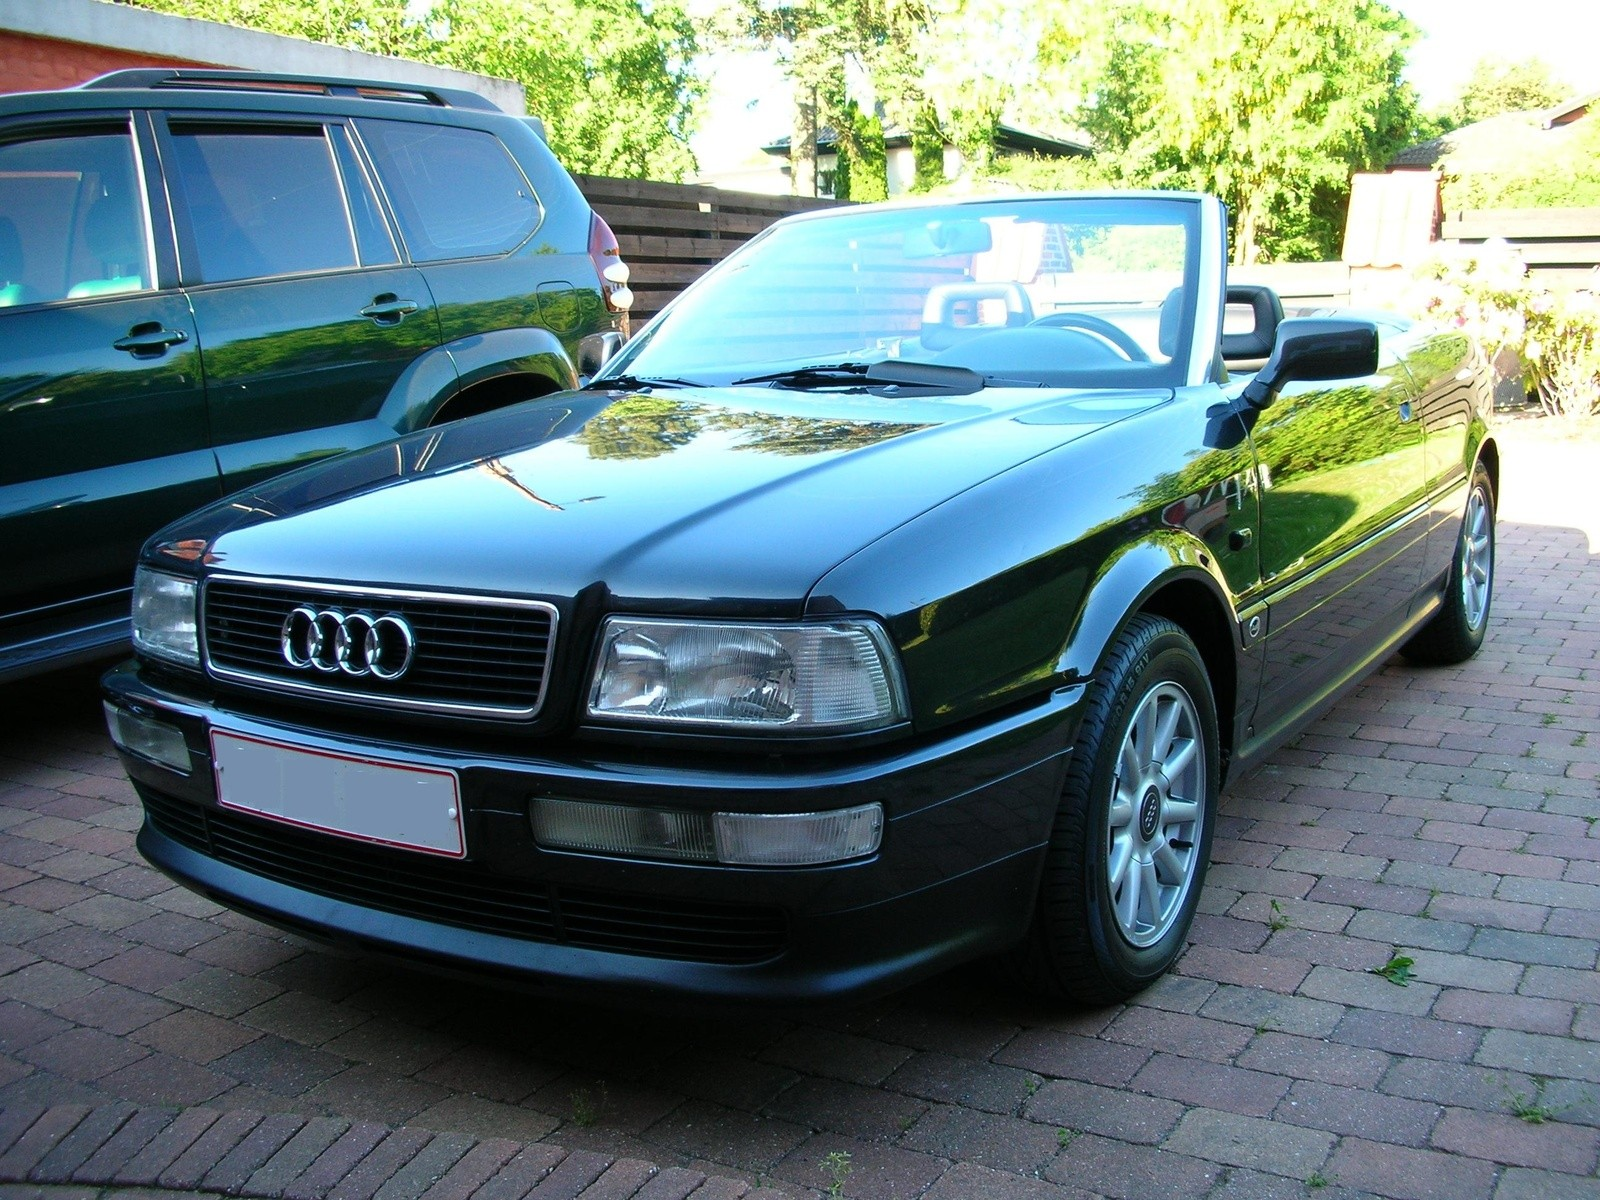 1995 Audi Cabriolet Convertible Top